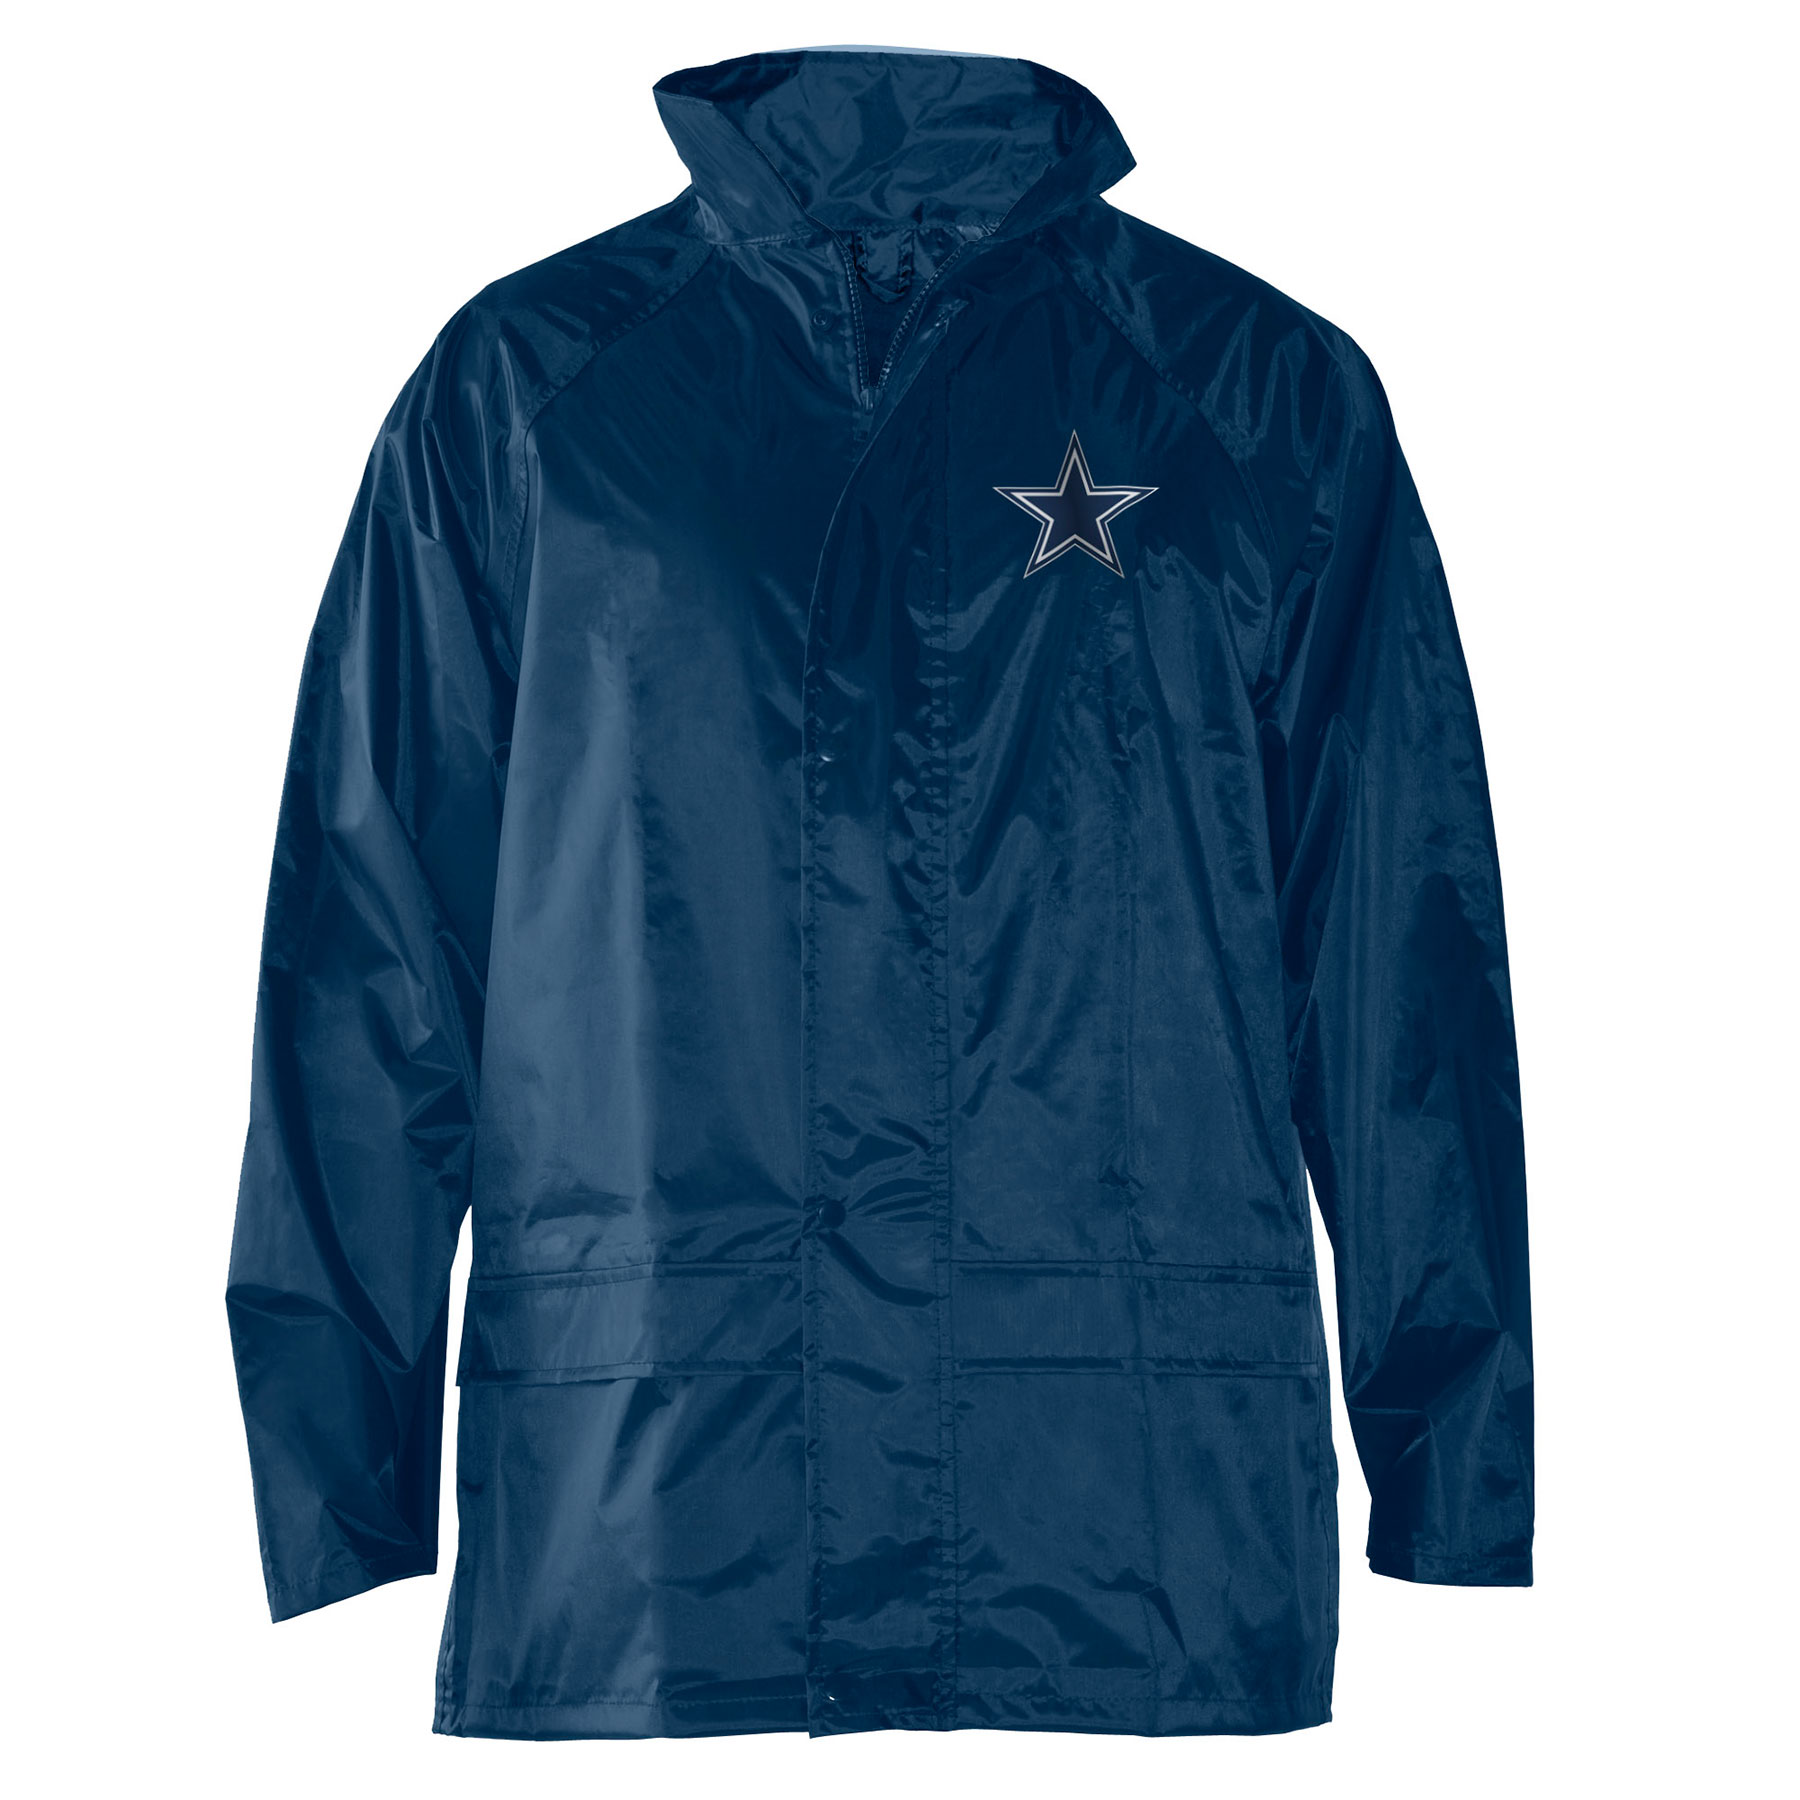 buy online 3253f 9d392 Dallas Cowboys NFL Stadium Packable Waterproof Rain Jacket ...